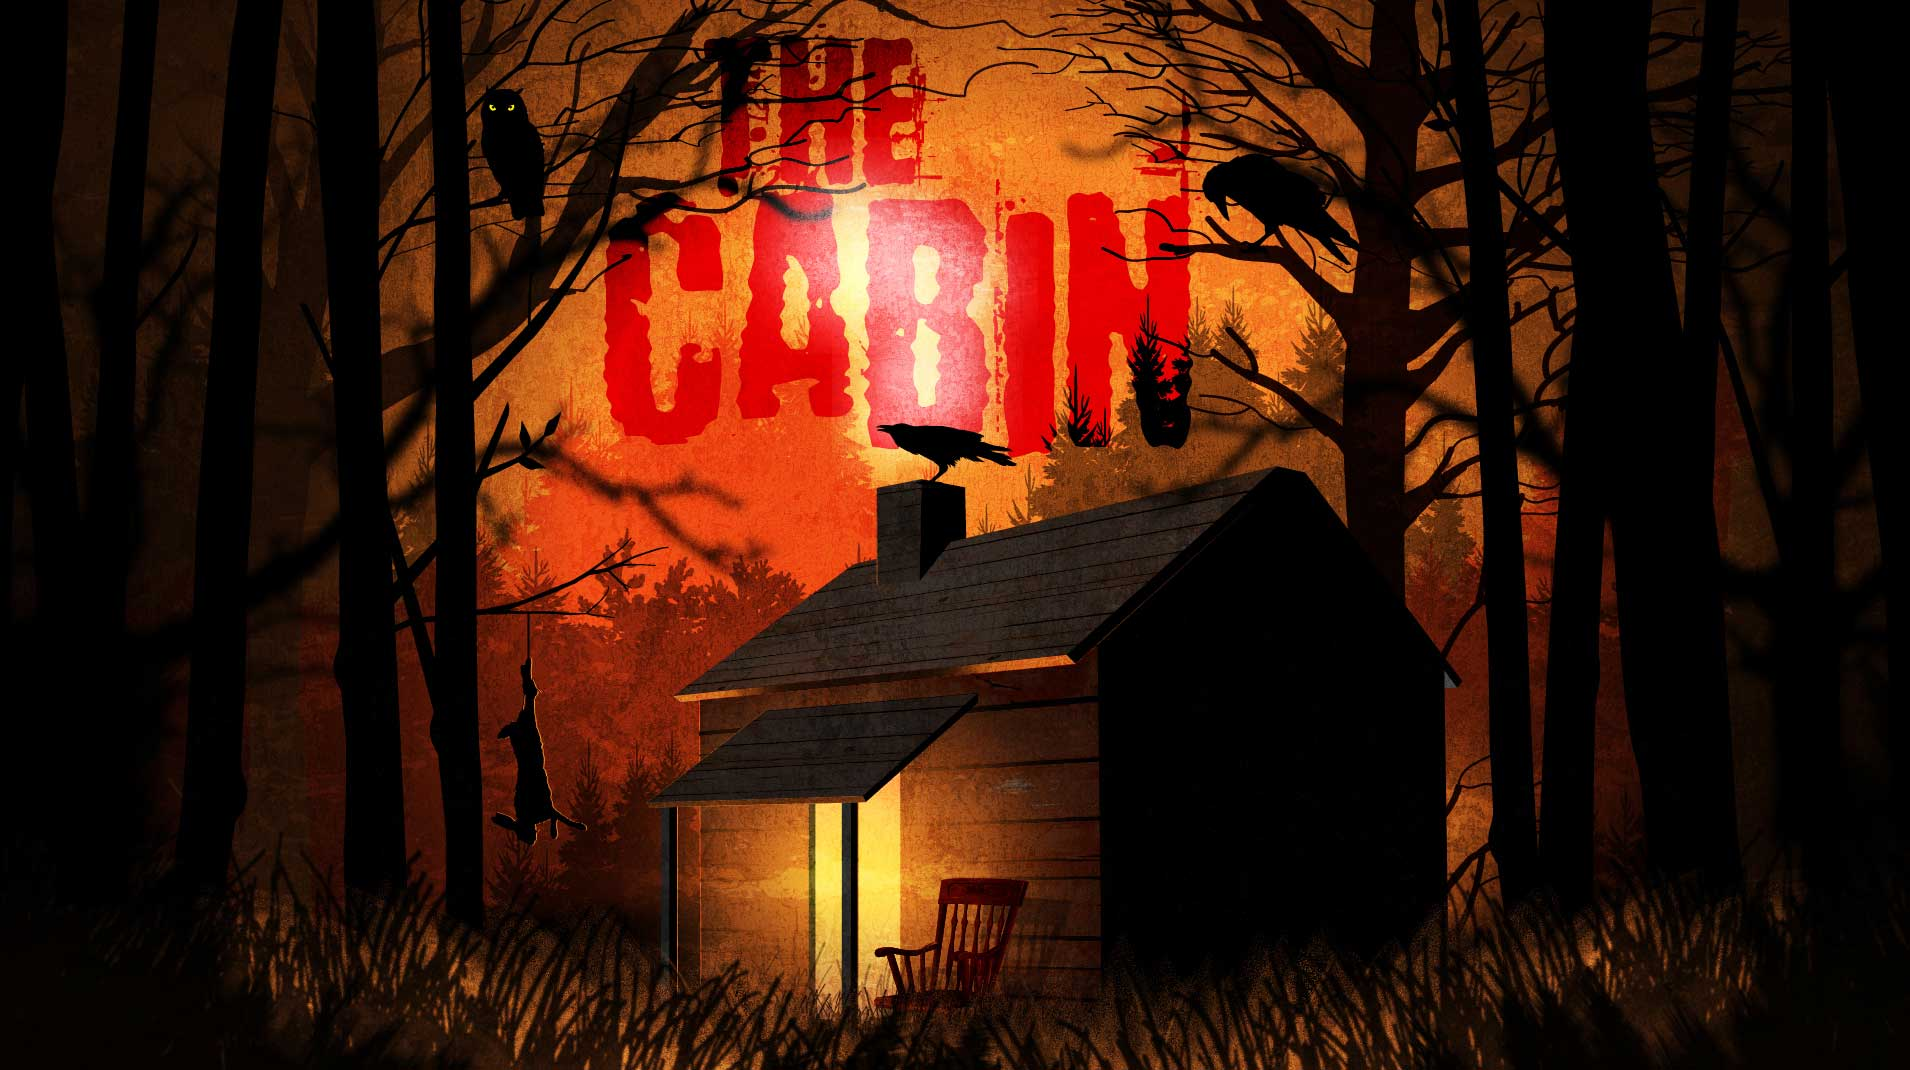 the cabin - A Tale speaks of a Cabin, abandoned and forgotten deep in the dark woods. But rumours have spread of a treasure hidden. The artifacts and riches guarded within. What awaits you inside, no one will know, For the brave and cunning you'll soon get the flow. For the weak and the rest you'll soon discover. The secrets of the cabin that were once covered.